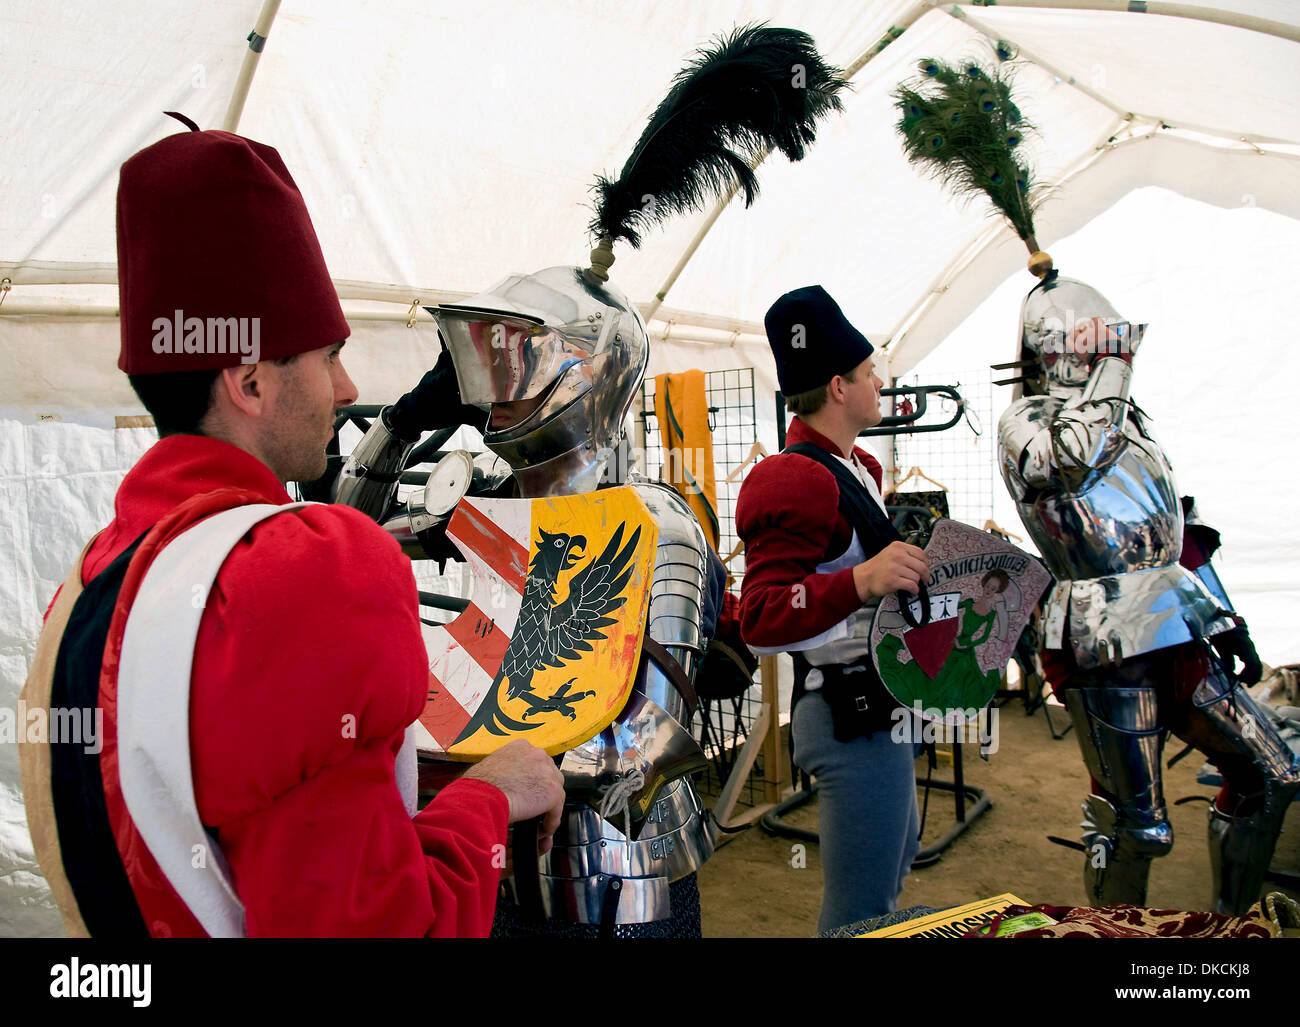 Oct. 23, 2011 - Poway, California, USA -  Knights dress for battle at the Fifth Annual Tournament of the Phoenix Stock Photo